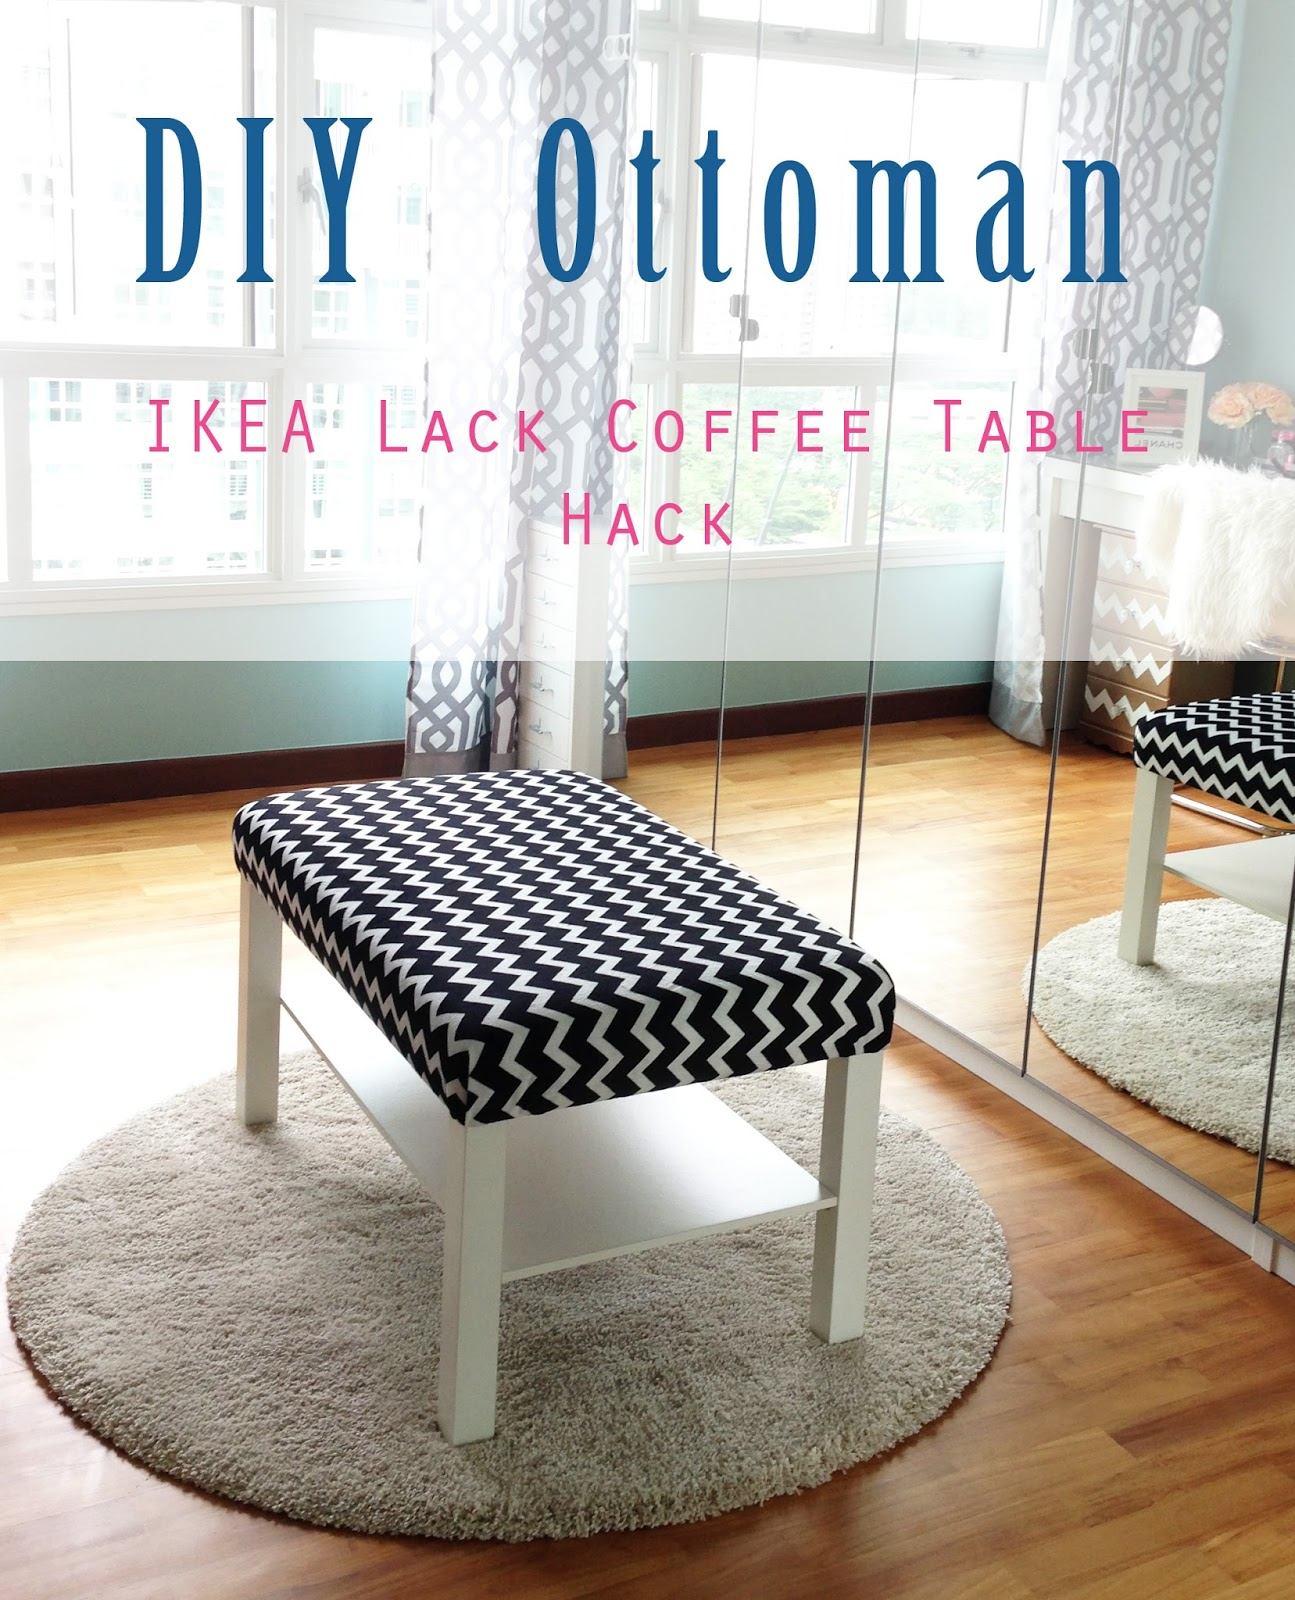 home style organize diy ottoman ikea lack coffee table hack. Black Bedroom Furniture Sets. Home Design Ideas